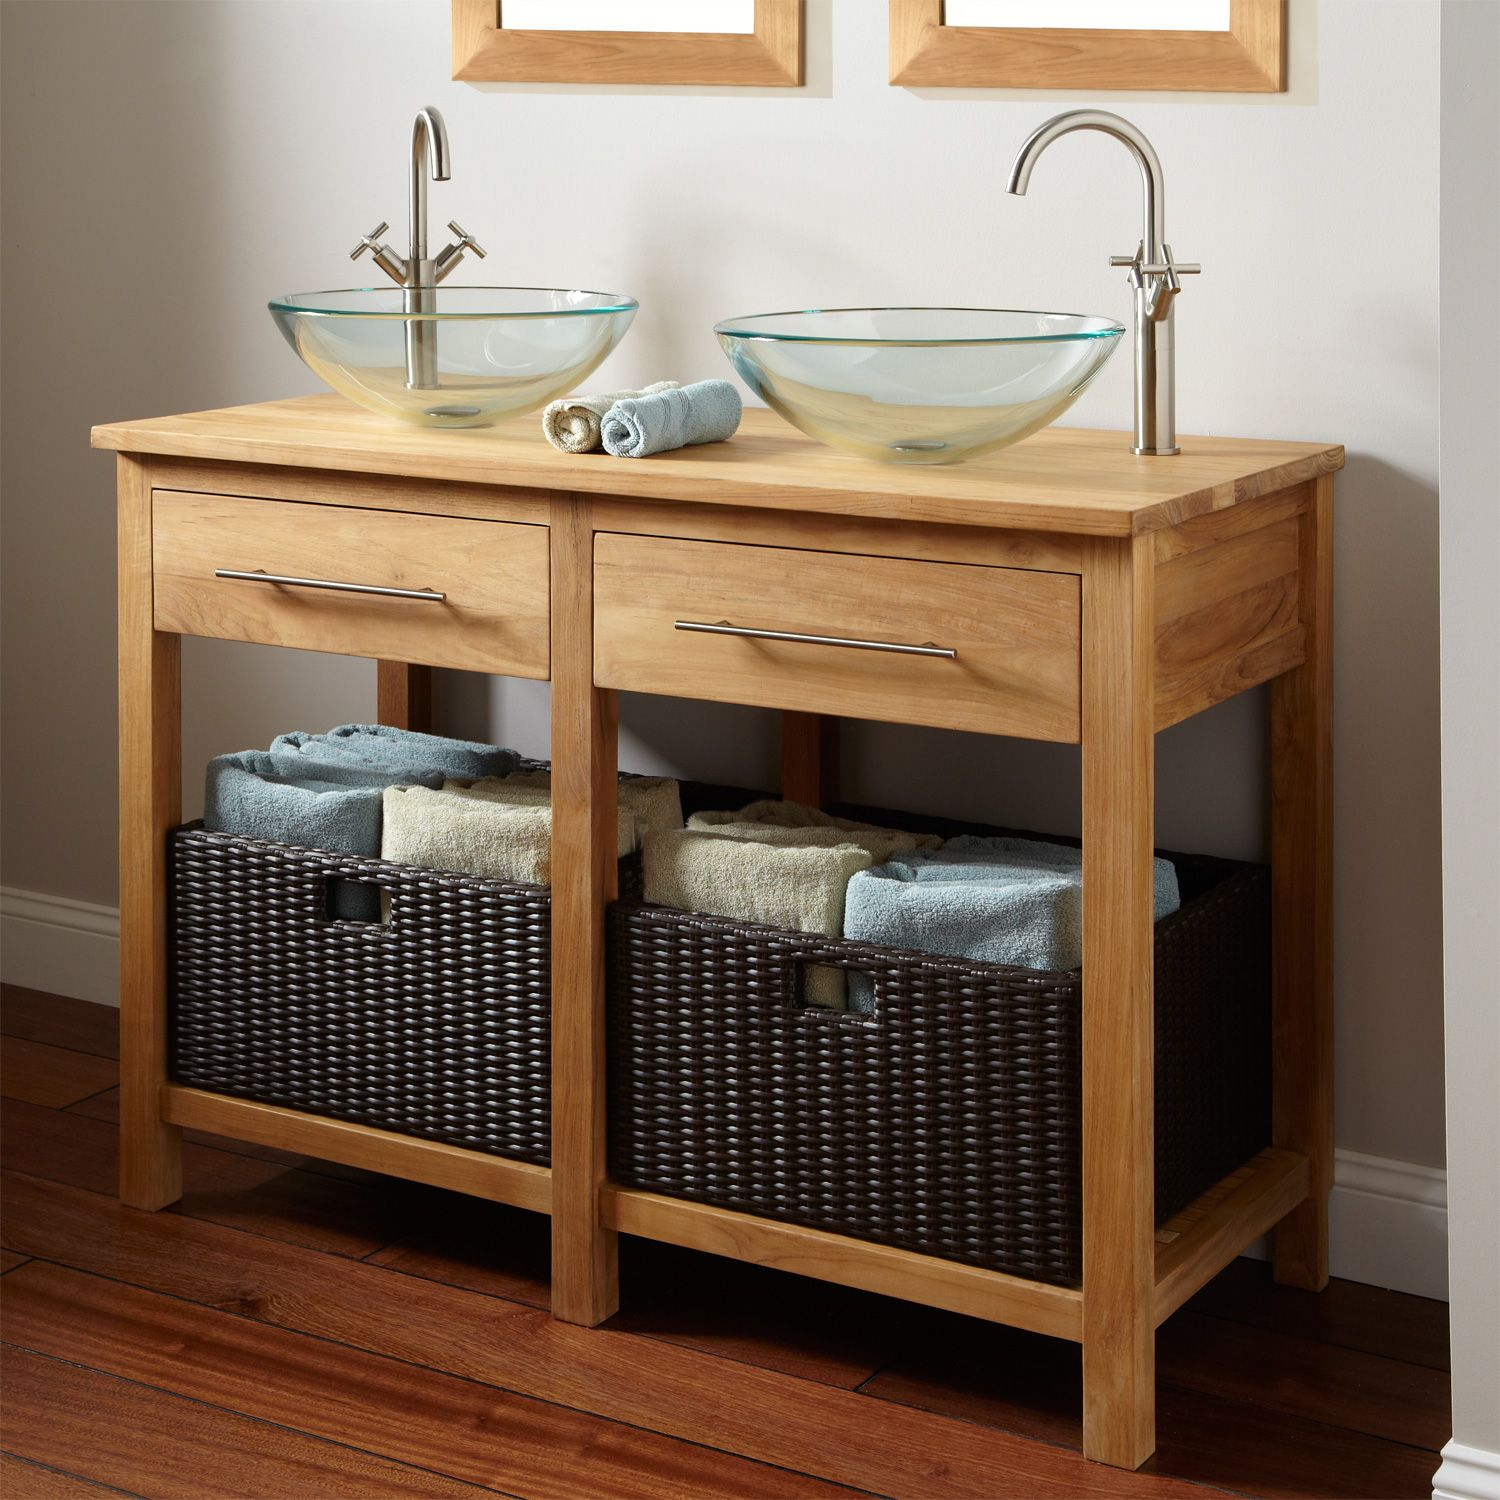 Rustic bathroom storage - Diy Bathroom Vanity Save Money By Making Your Own